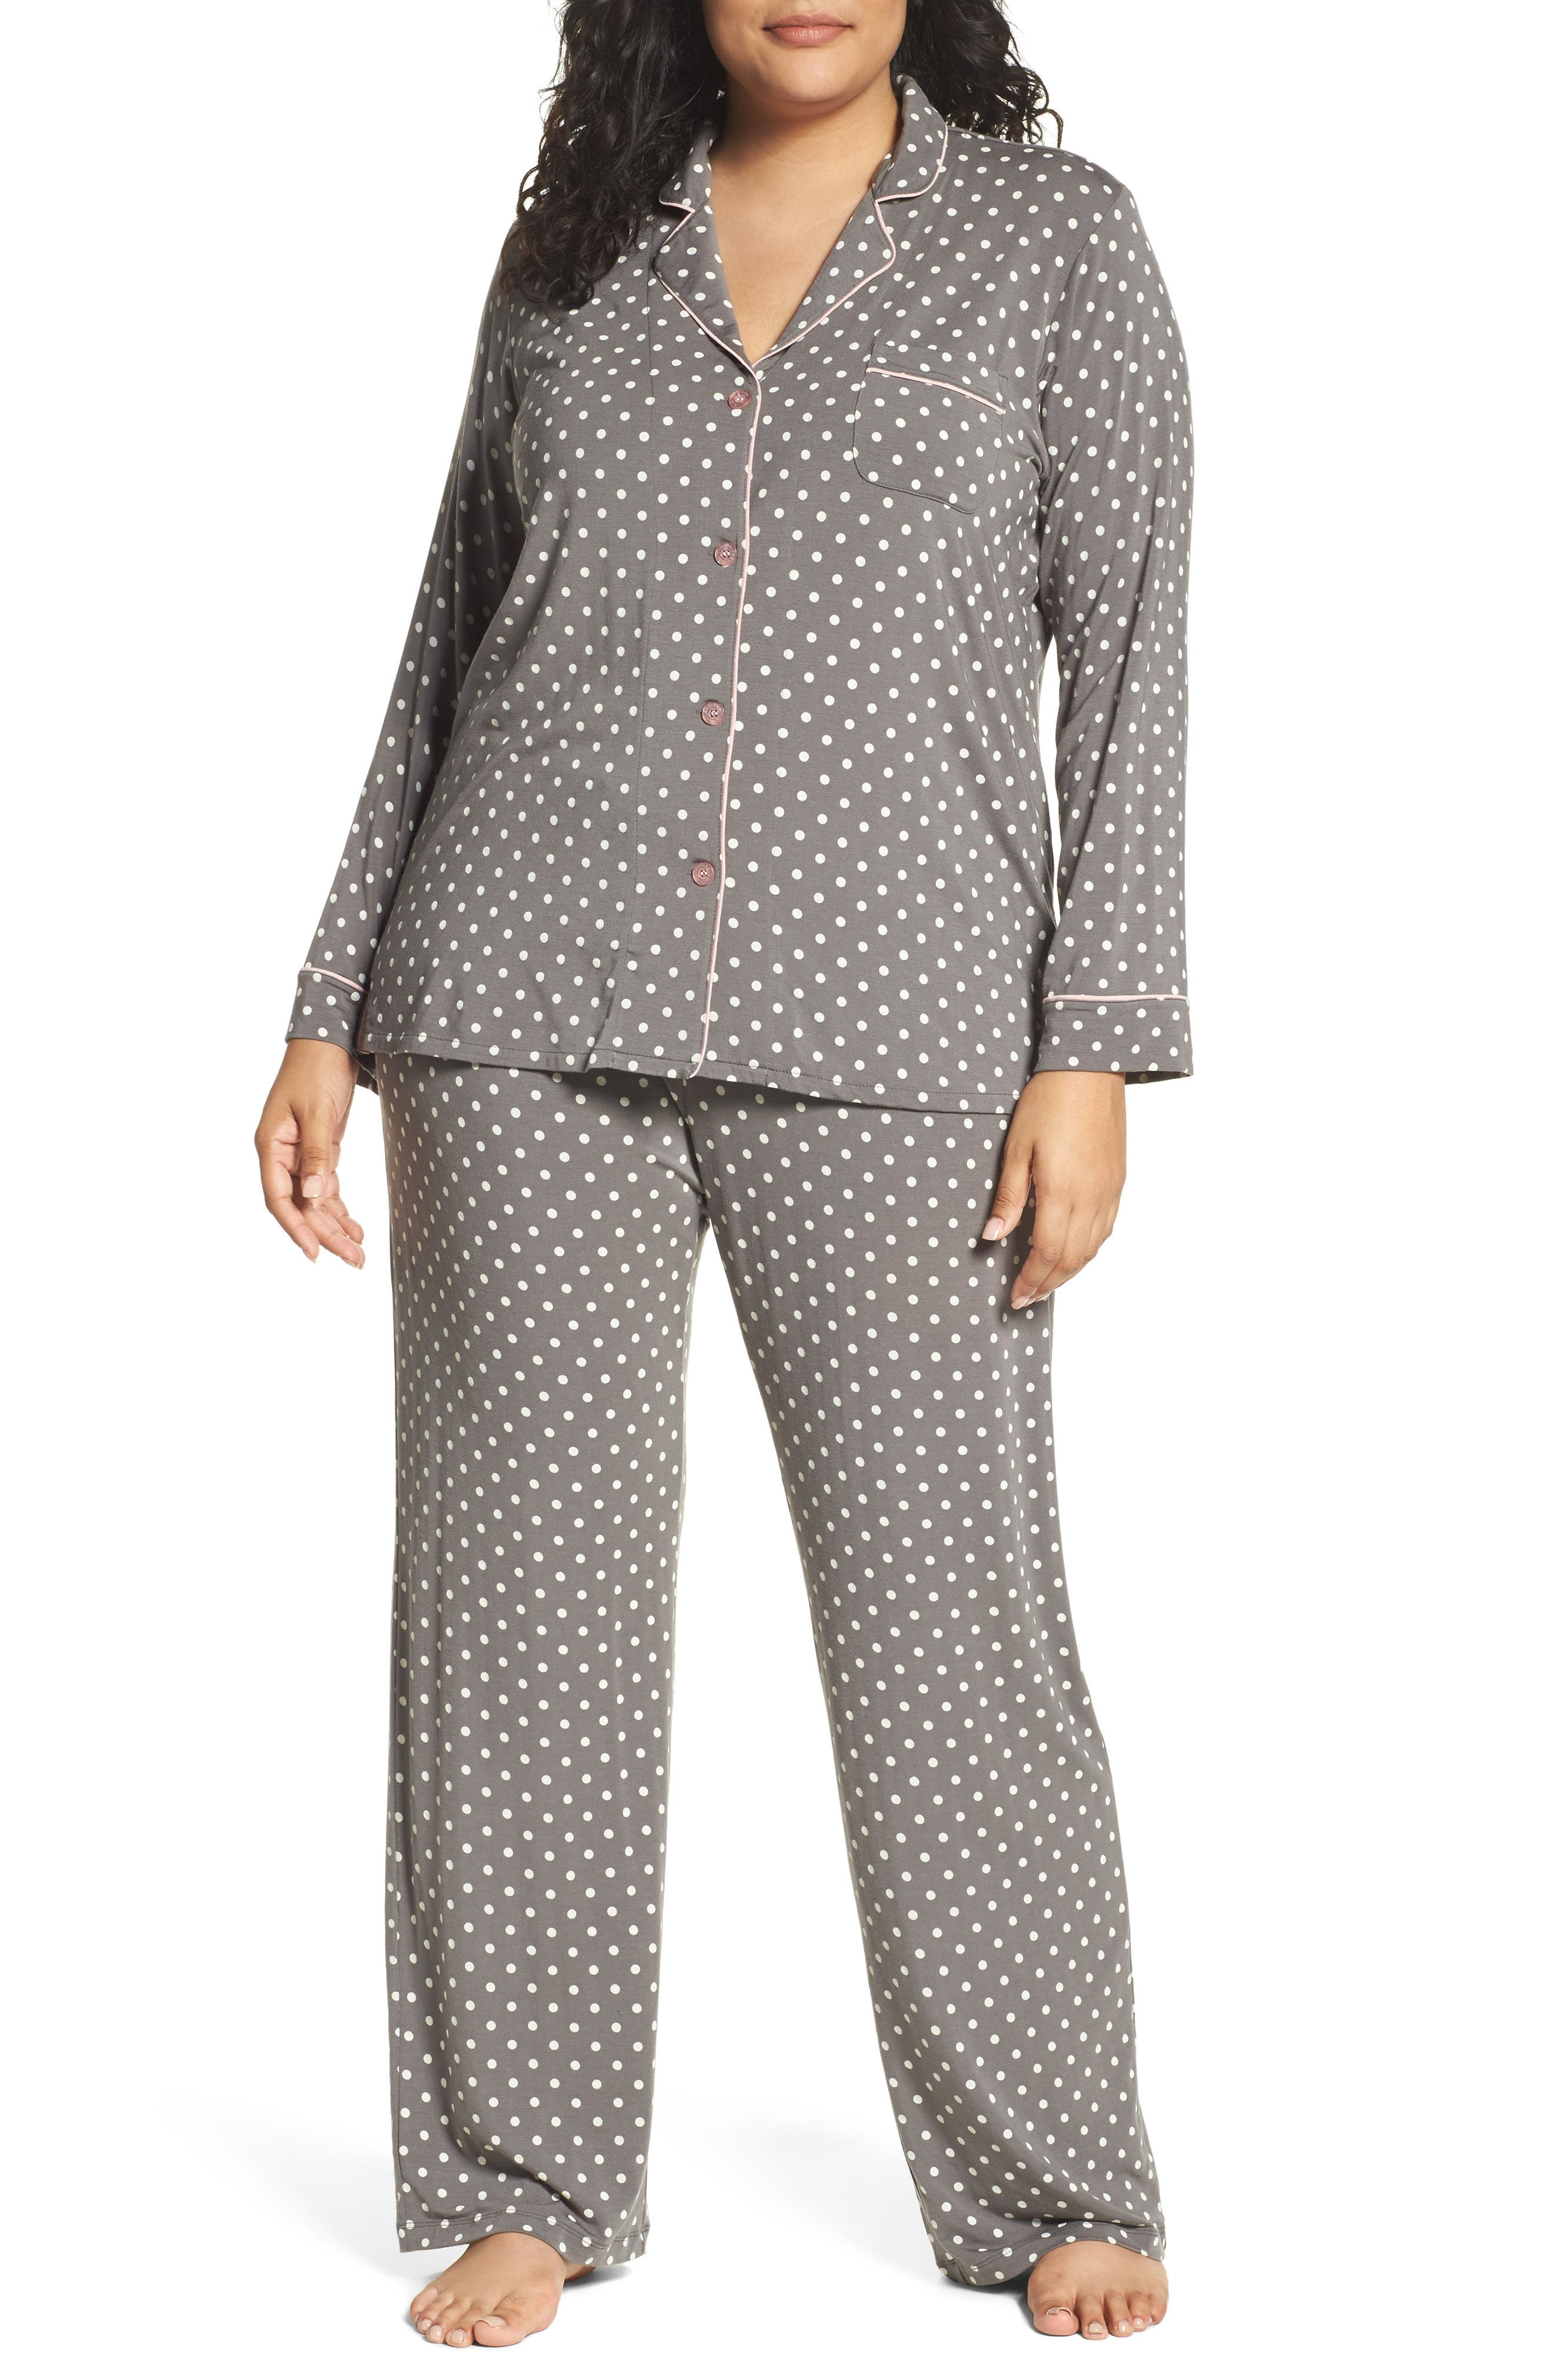 Polka Dot Pajamas,                             Main thumbnail 1, color,